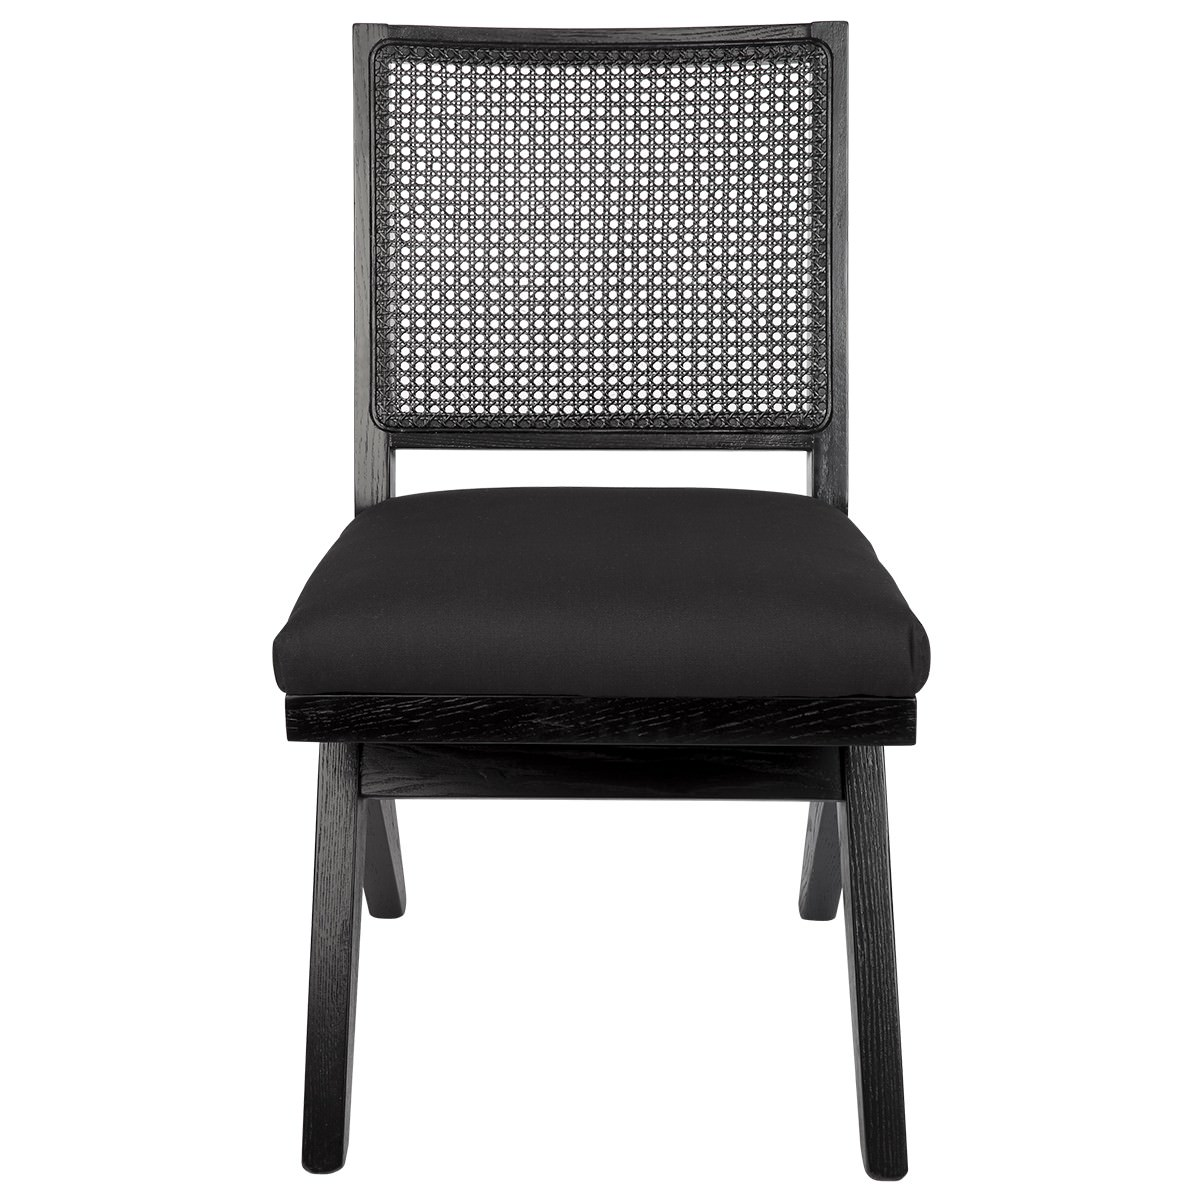 The Imperial Oak Timber Dining Chair, Black